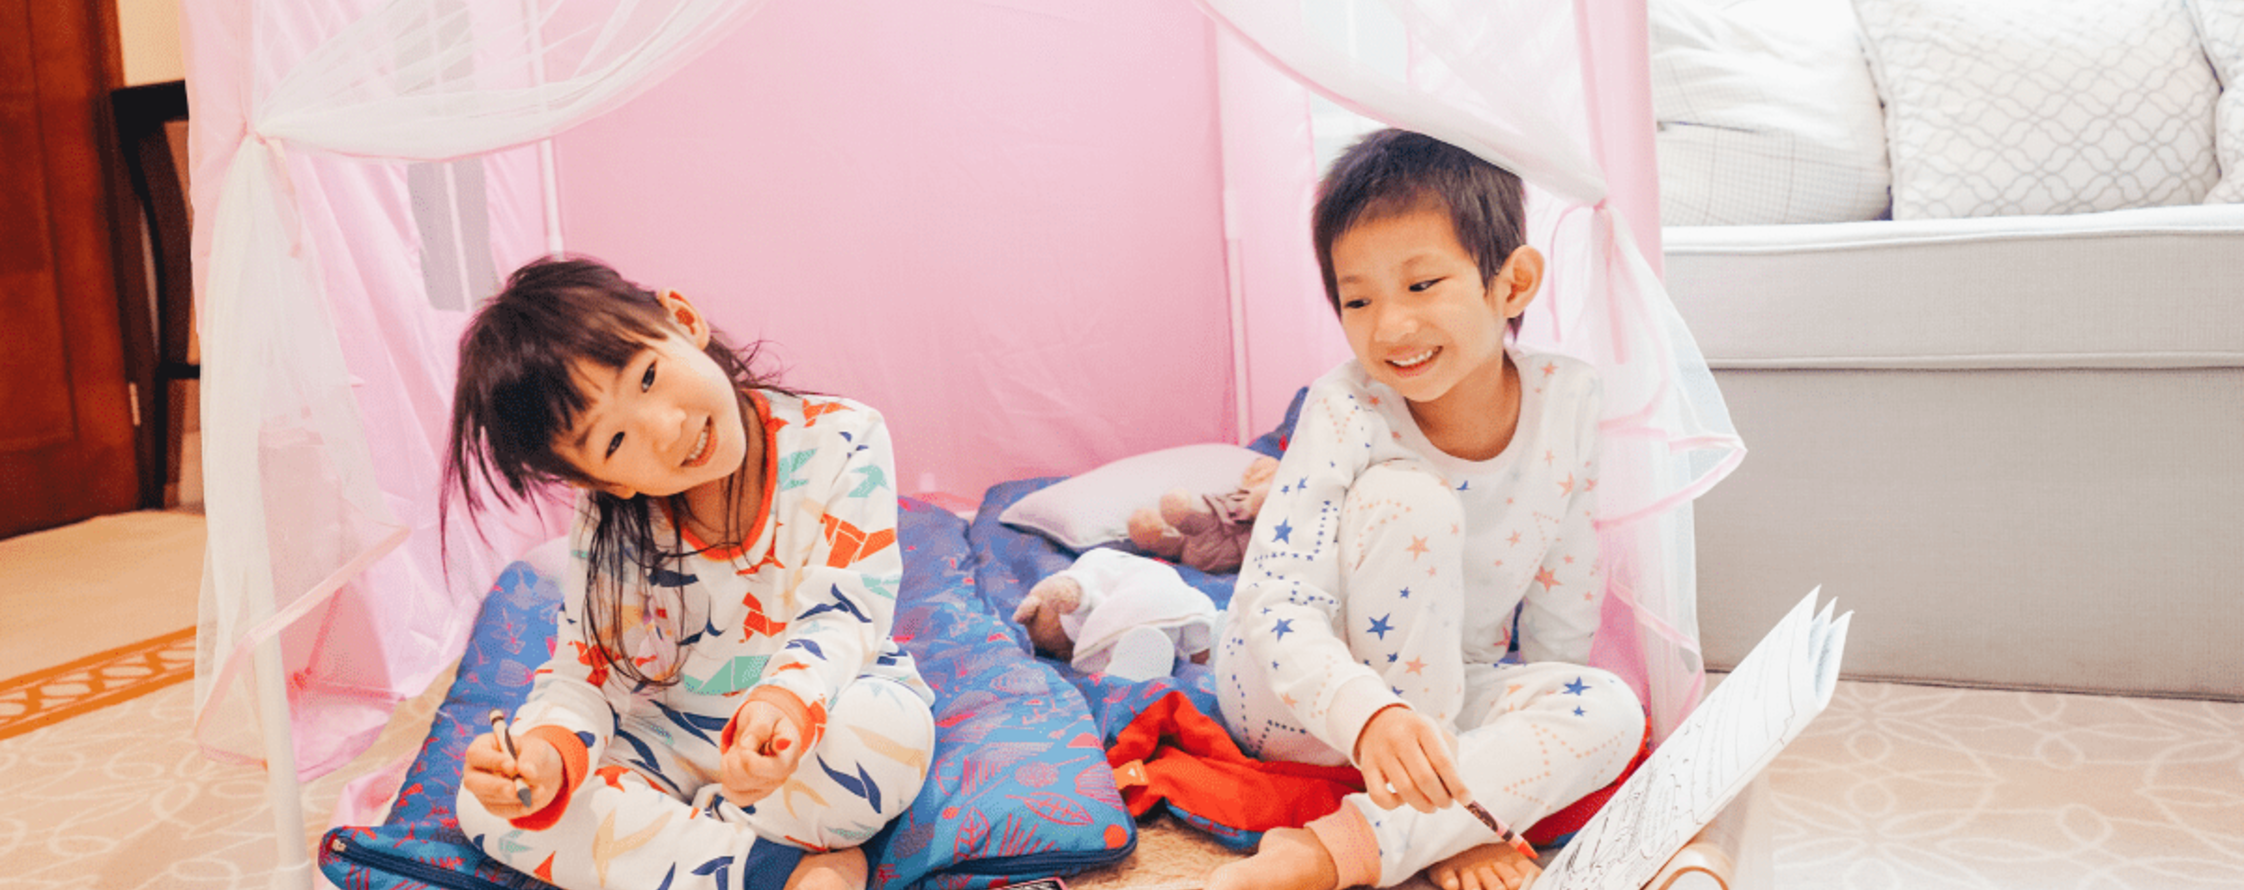 Two kids in pyjamas under a small tent in a room